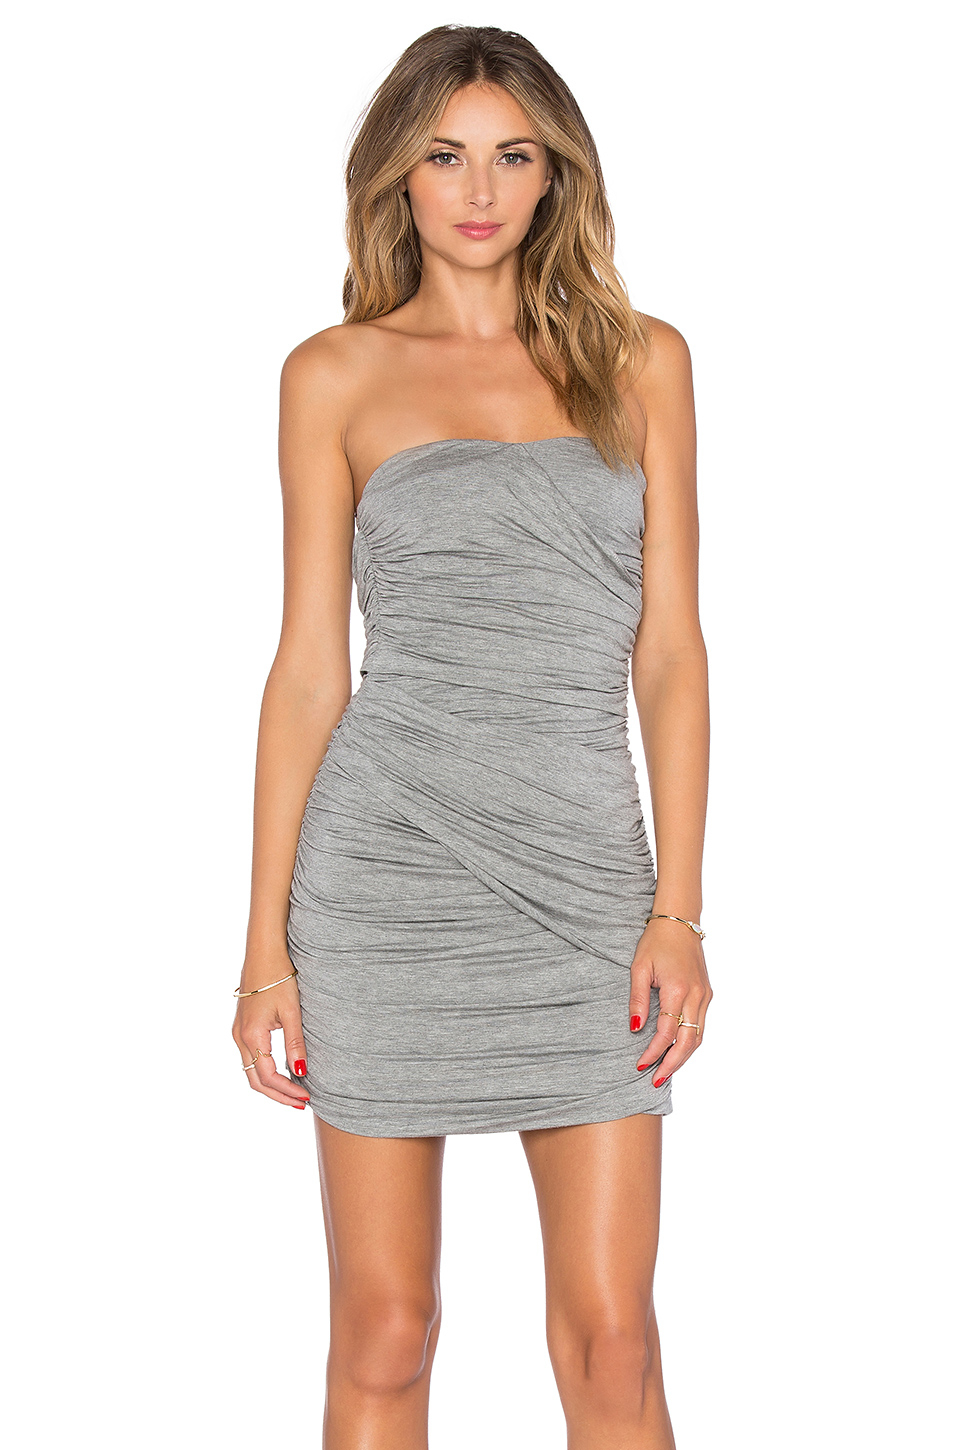 55b53b403fd7 Lyst - Blaque Label Ruched Strapless Dress in Gray